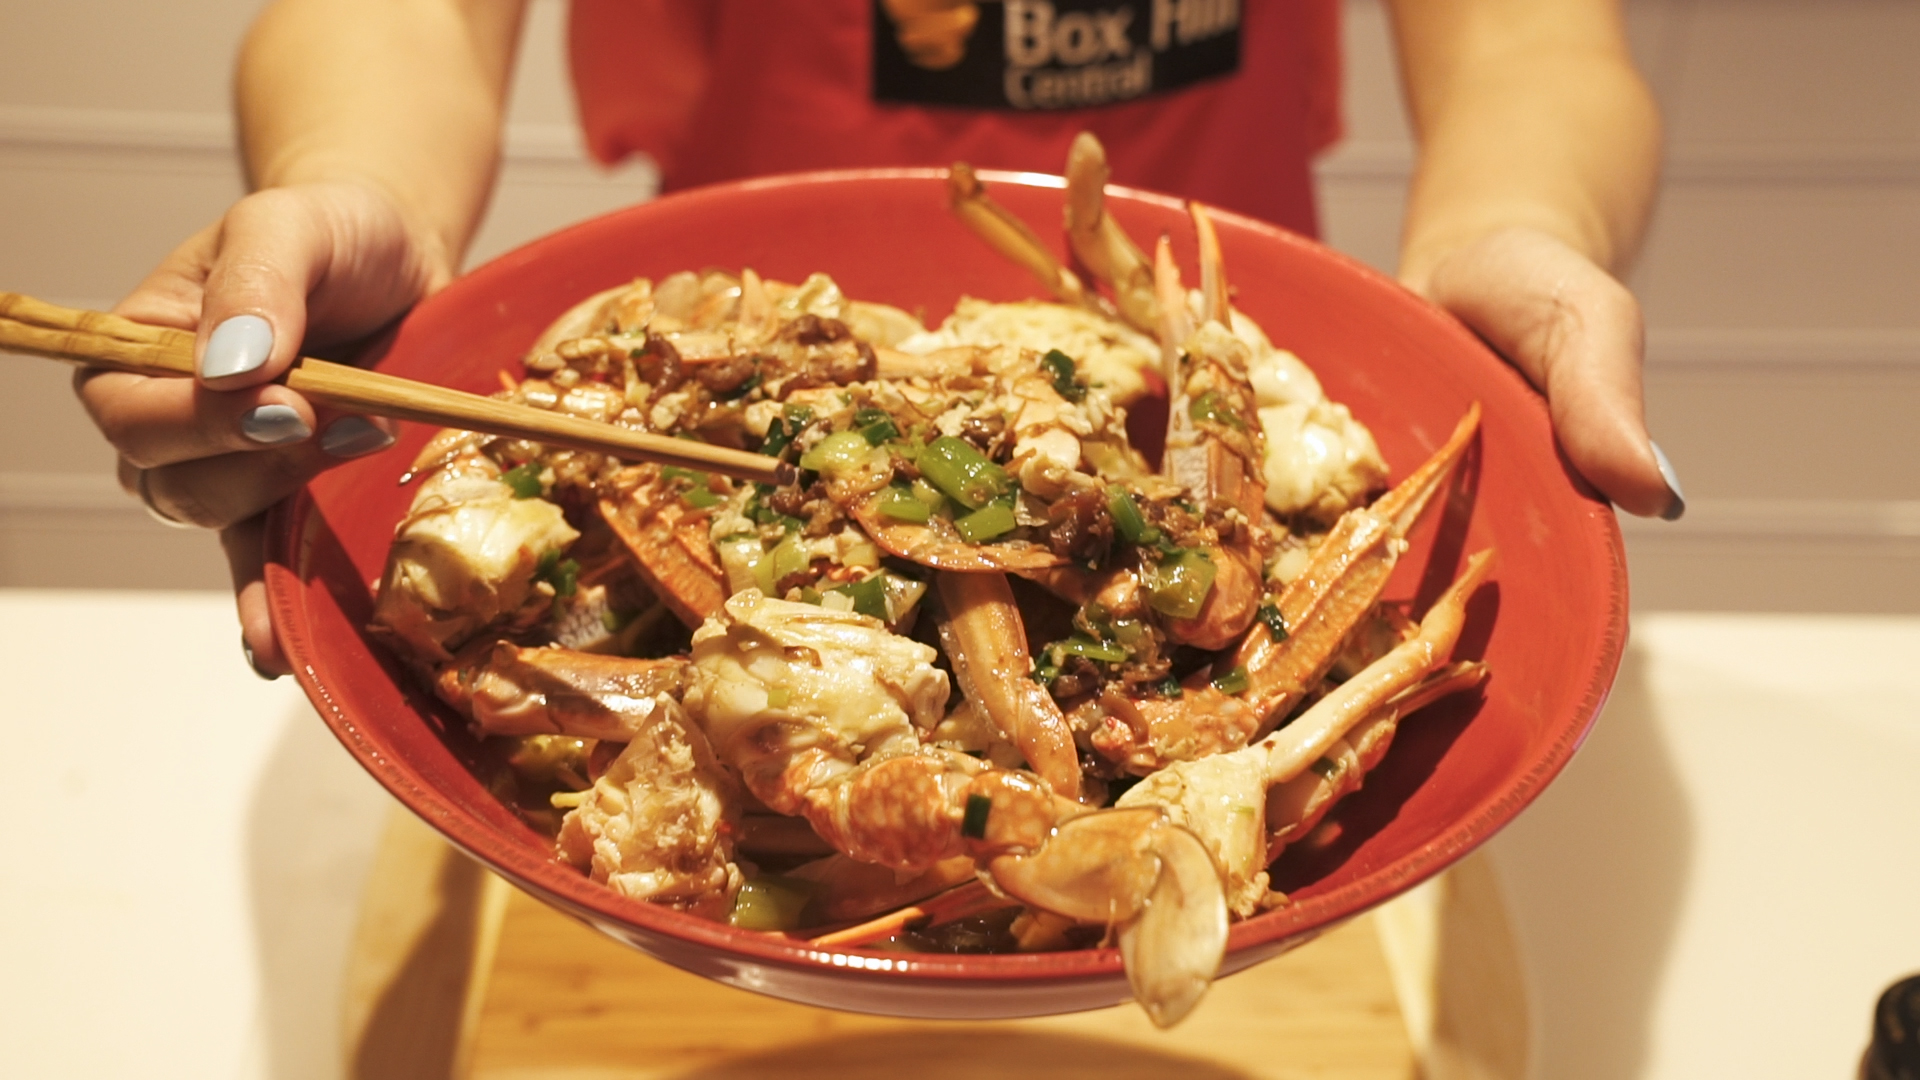 XO Stir-fry Crabs with Egg Noodles